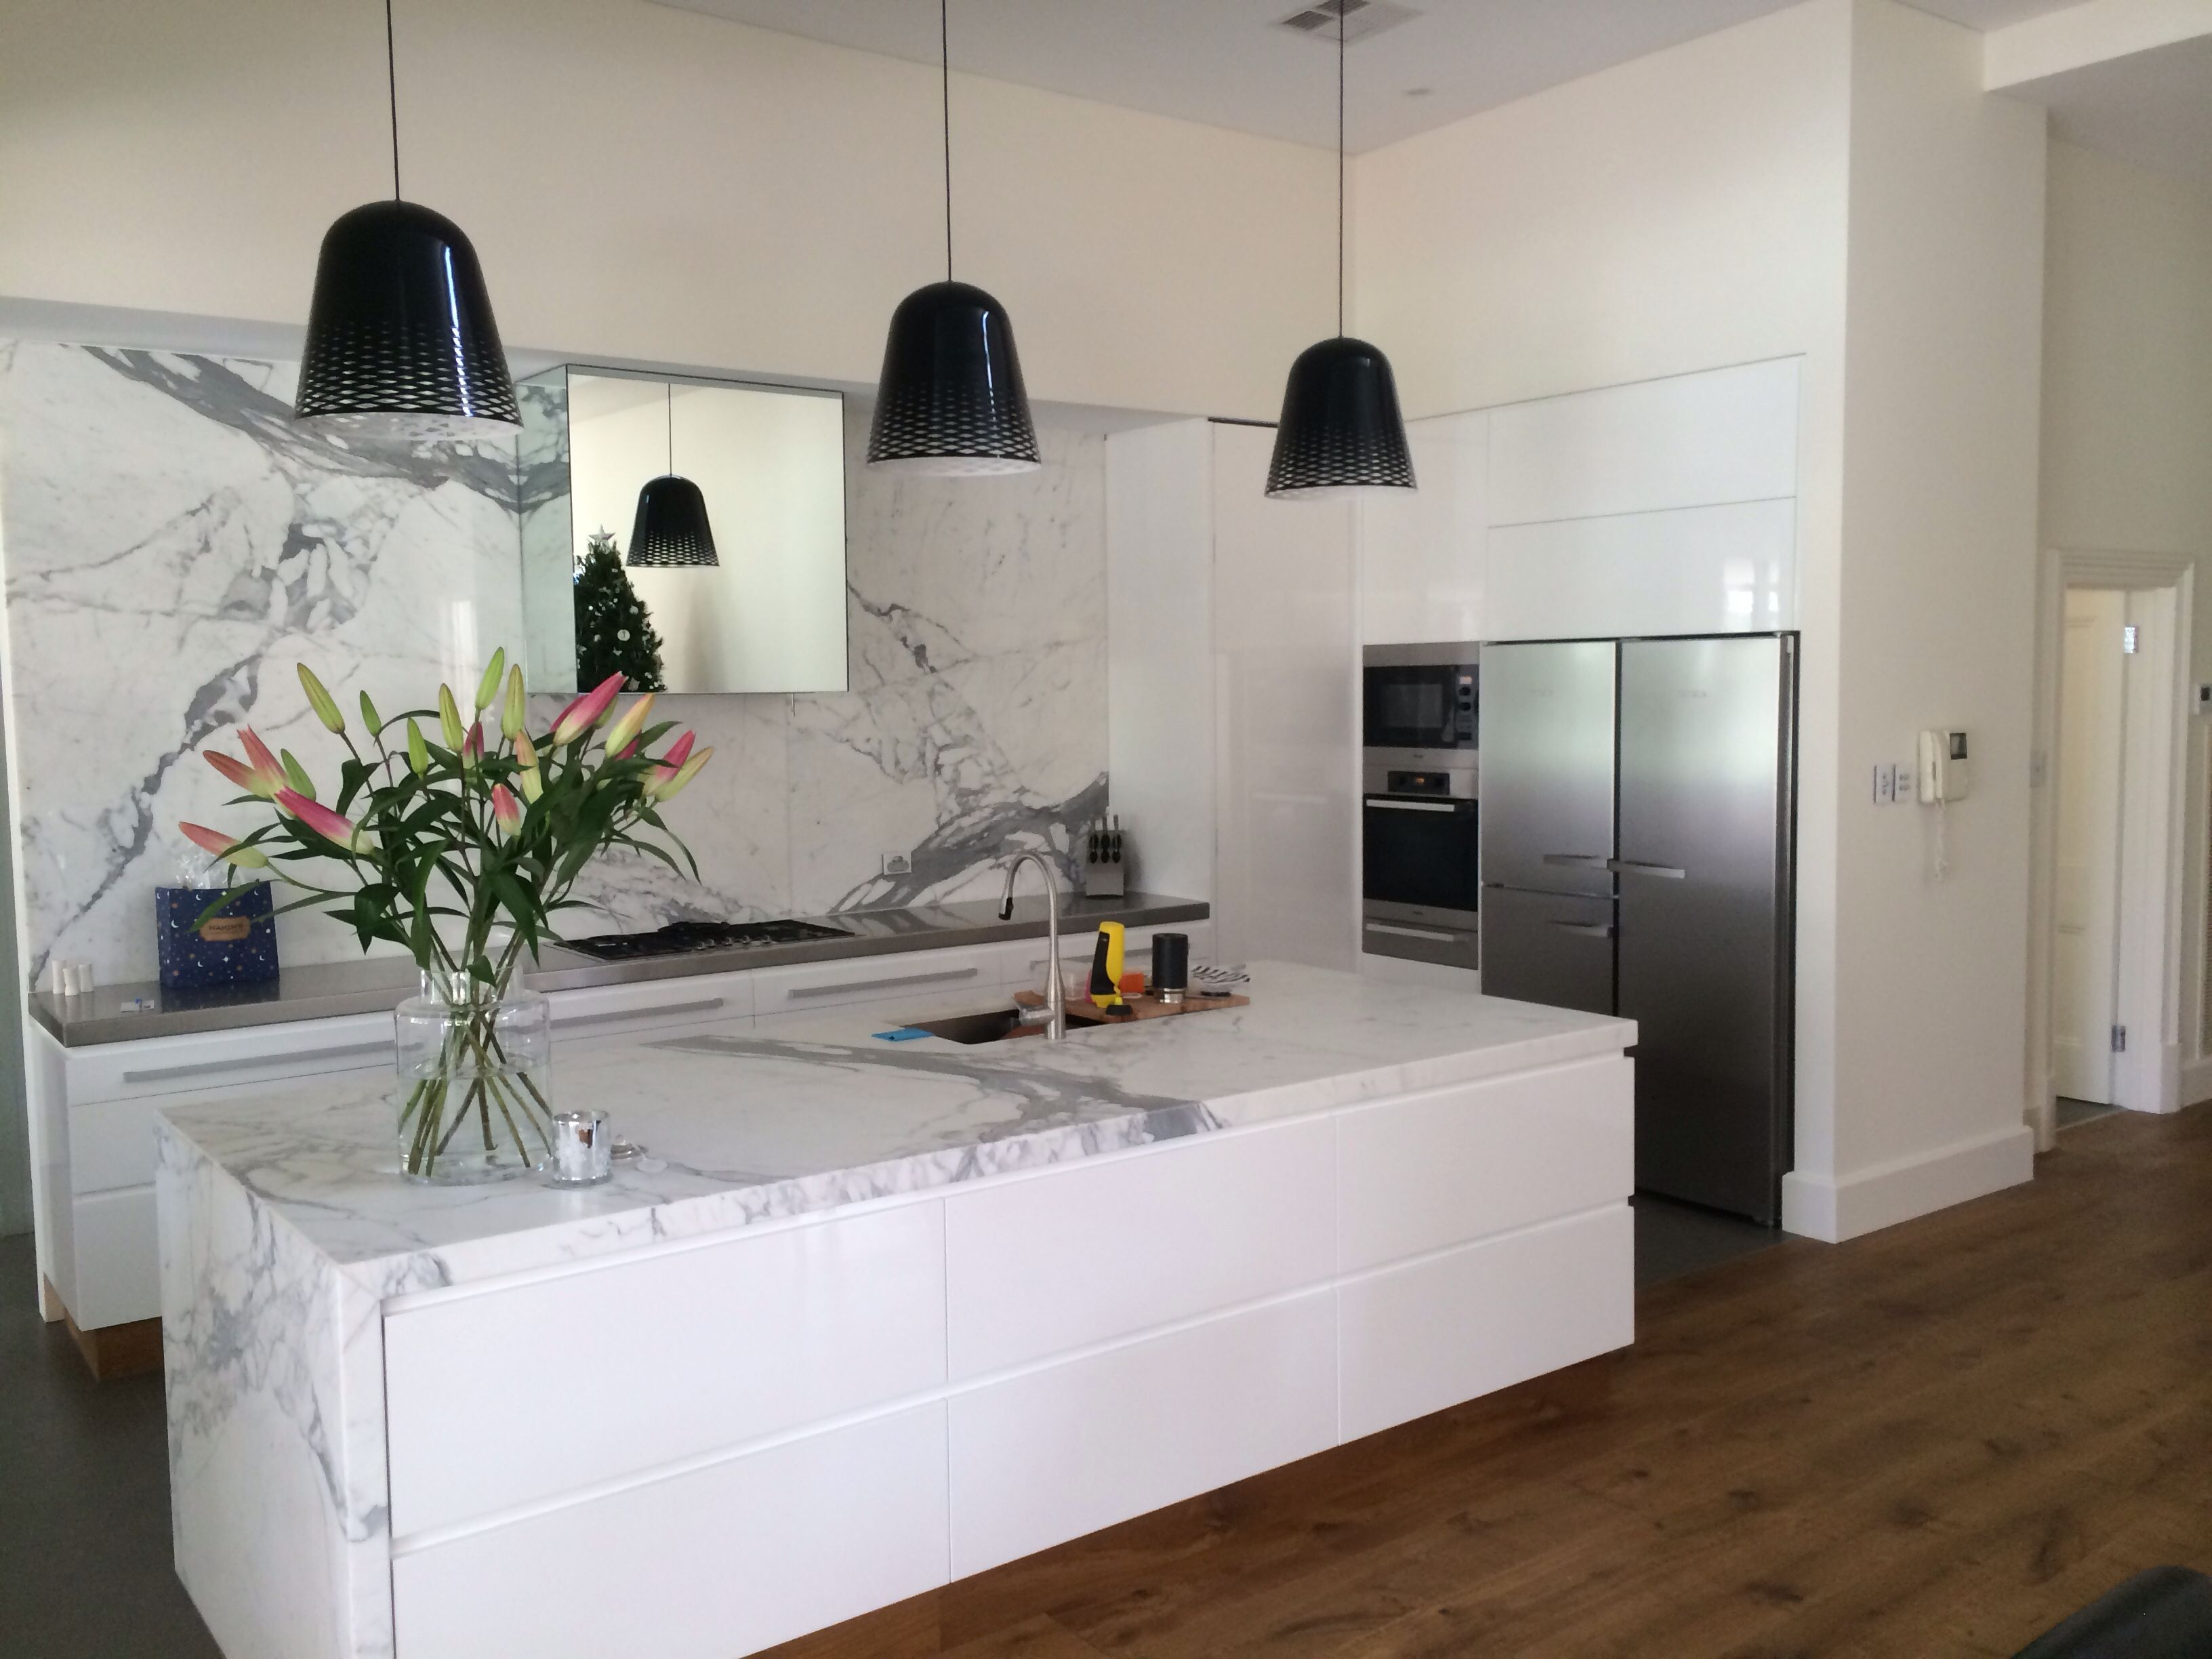 Kitchen design in austin with flat panel cabinets stainless steel - White Gloss 2 Pac Kitchen With Marble Island And Splashback Rear Bench Top Is Stainless